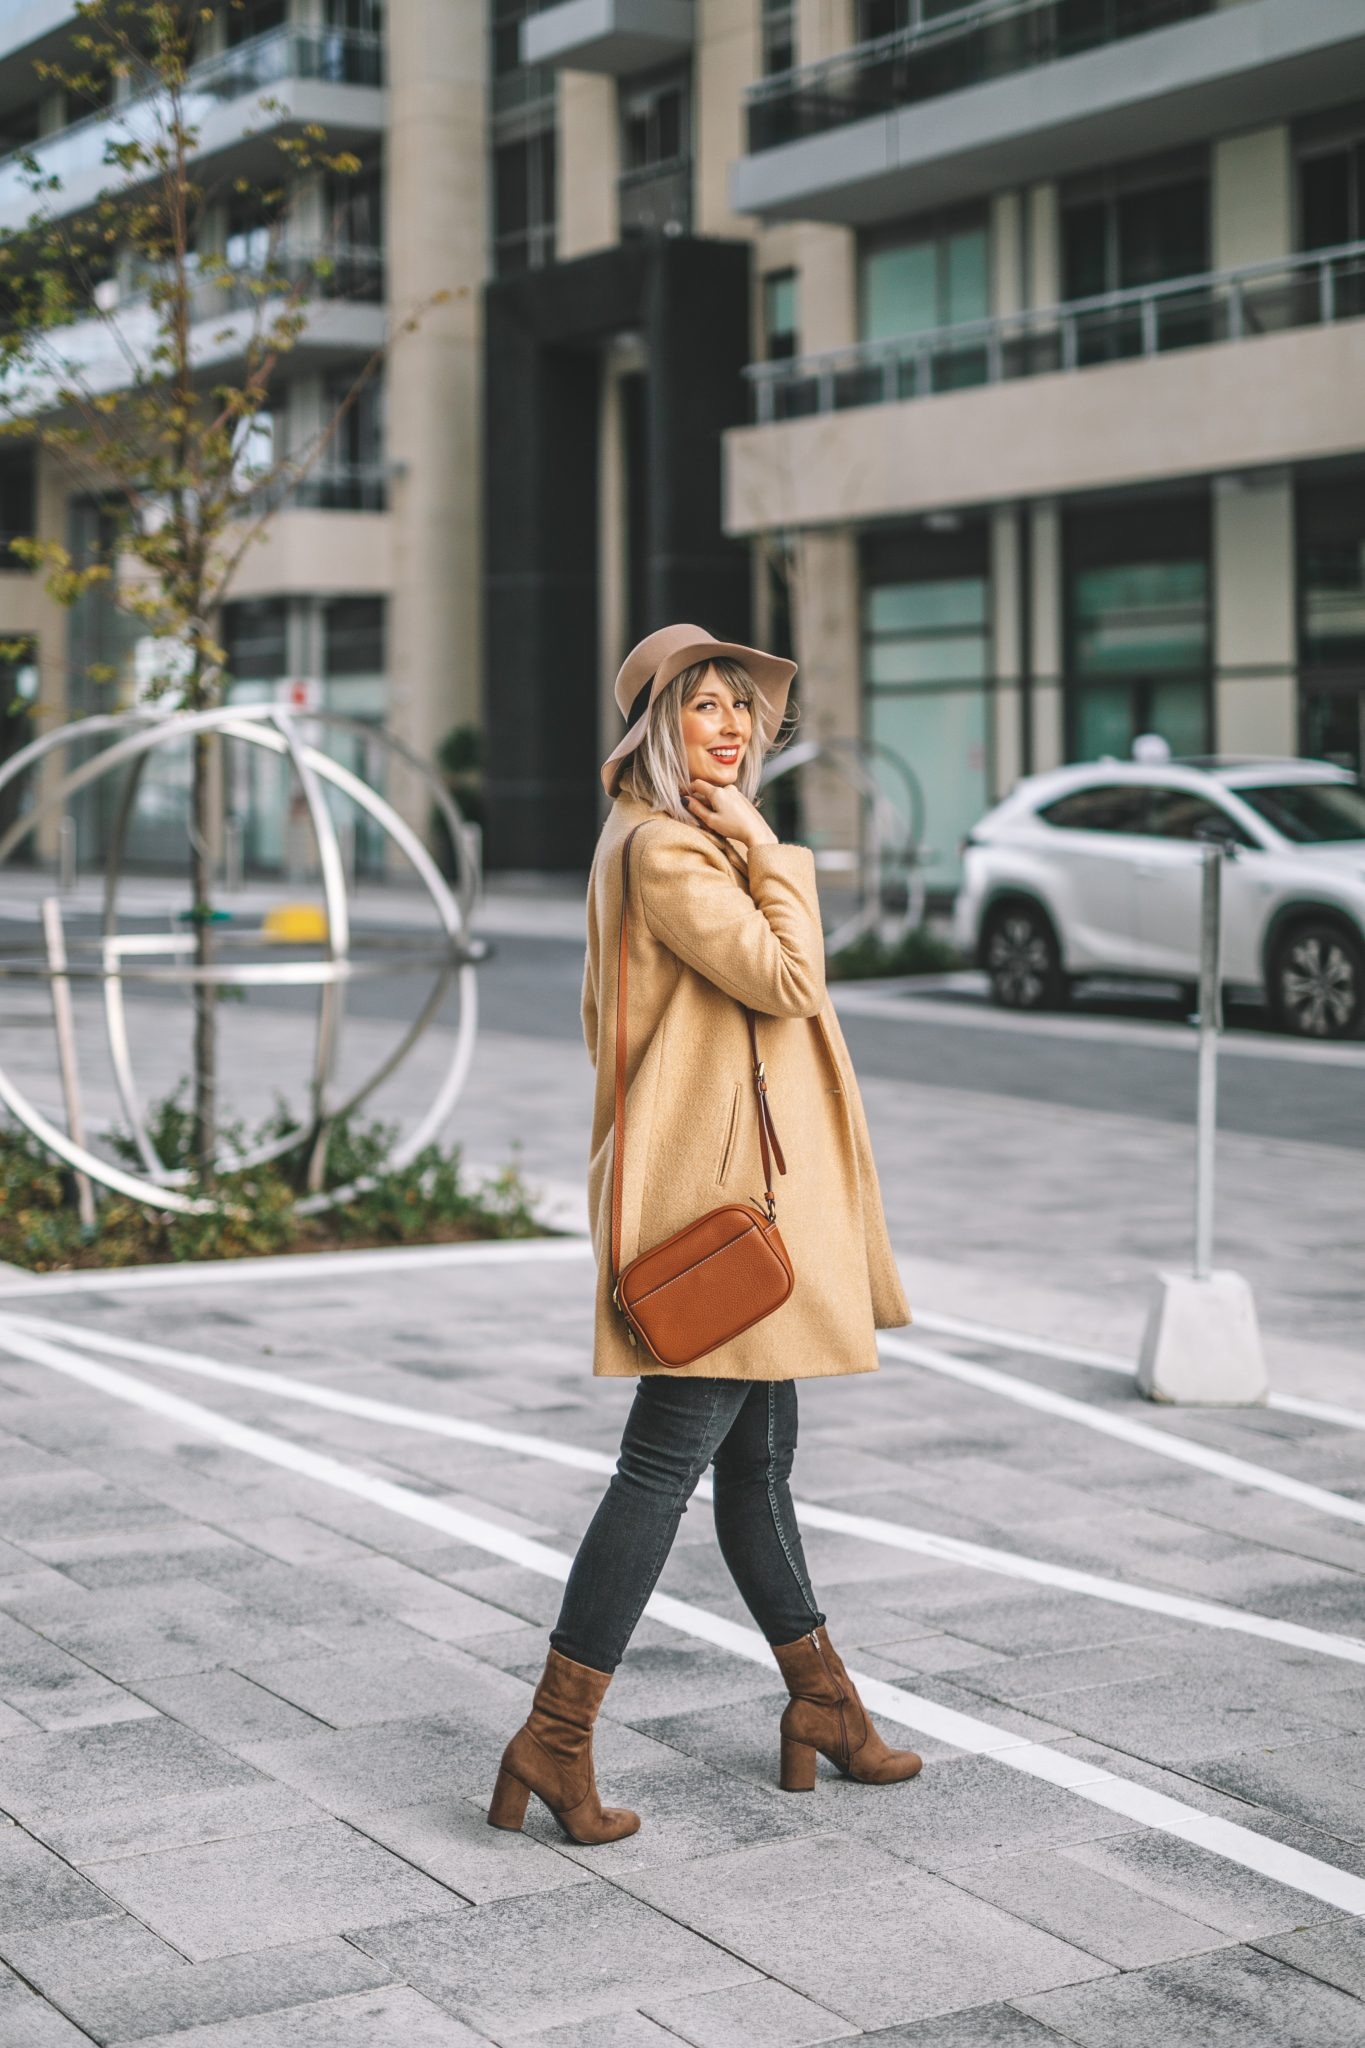 Beige coat and hat street style (4 of 10)